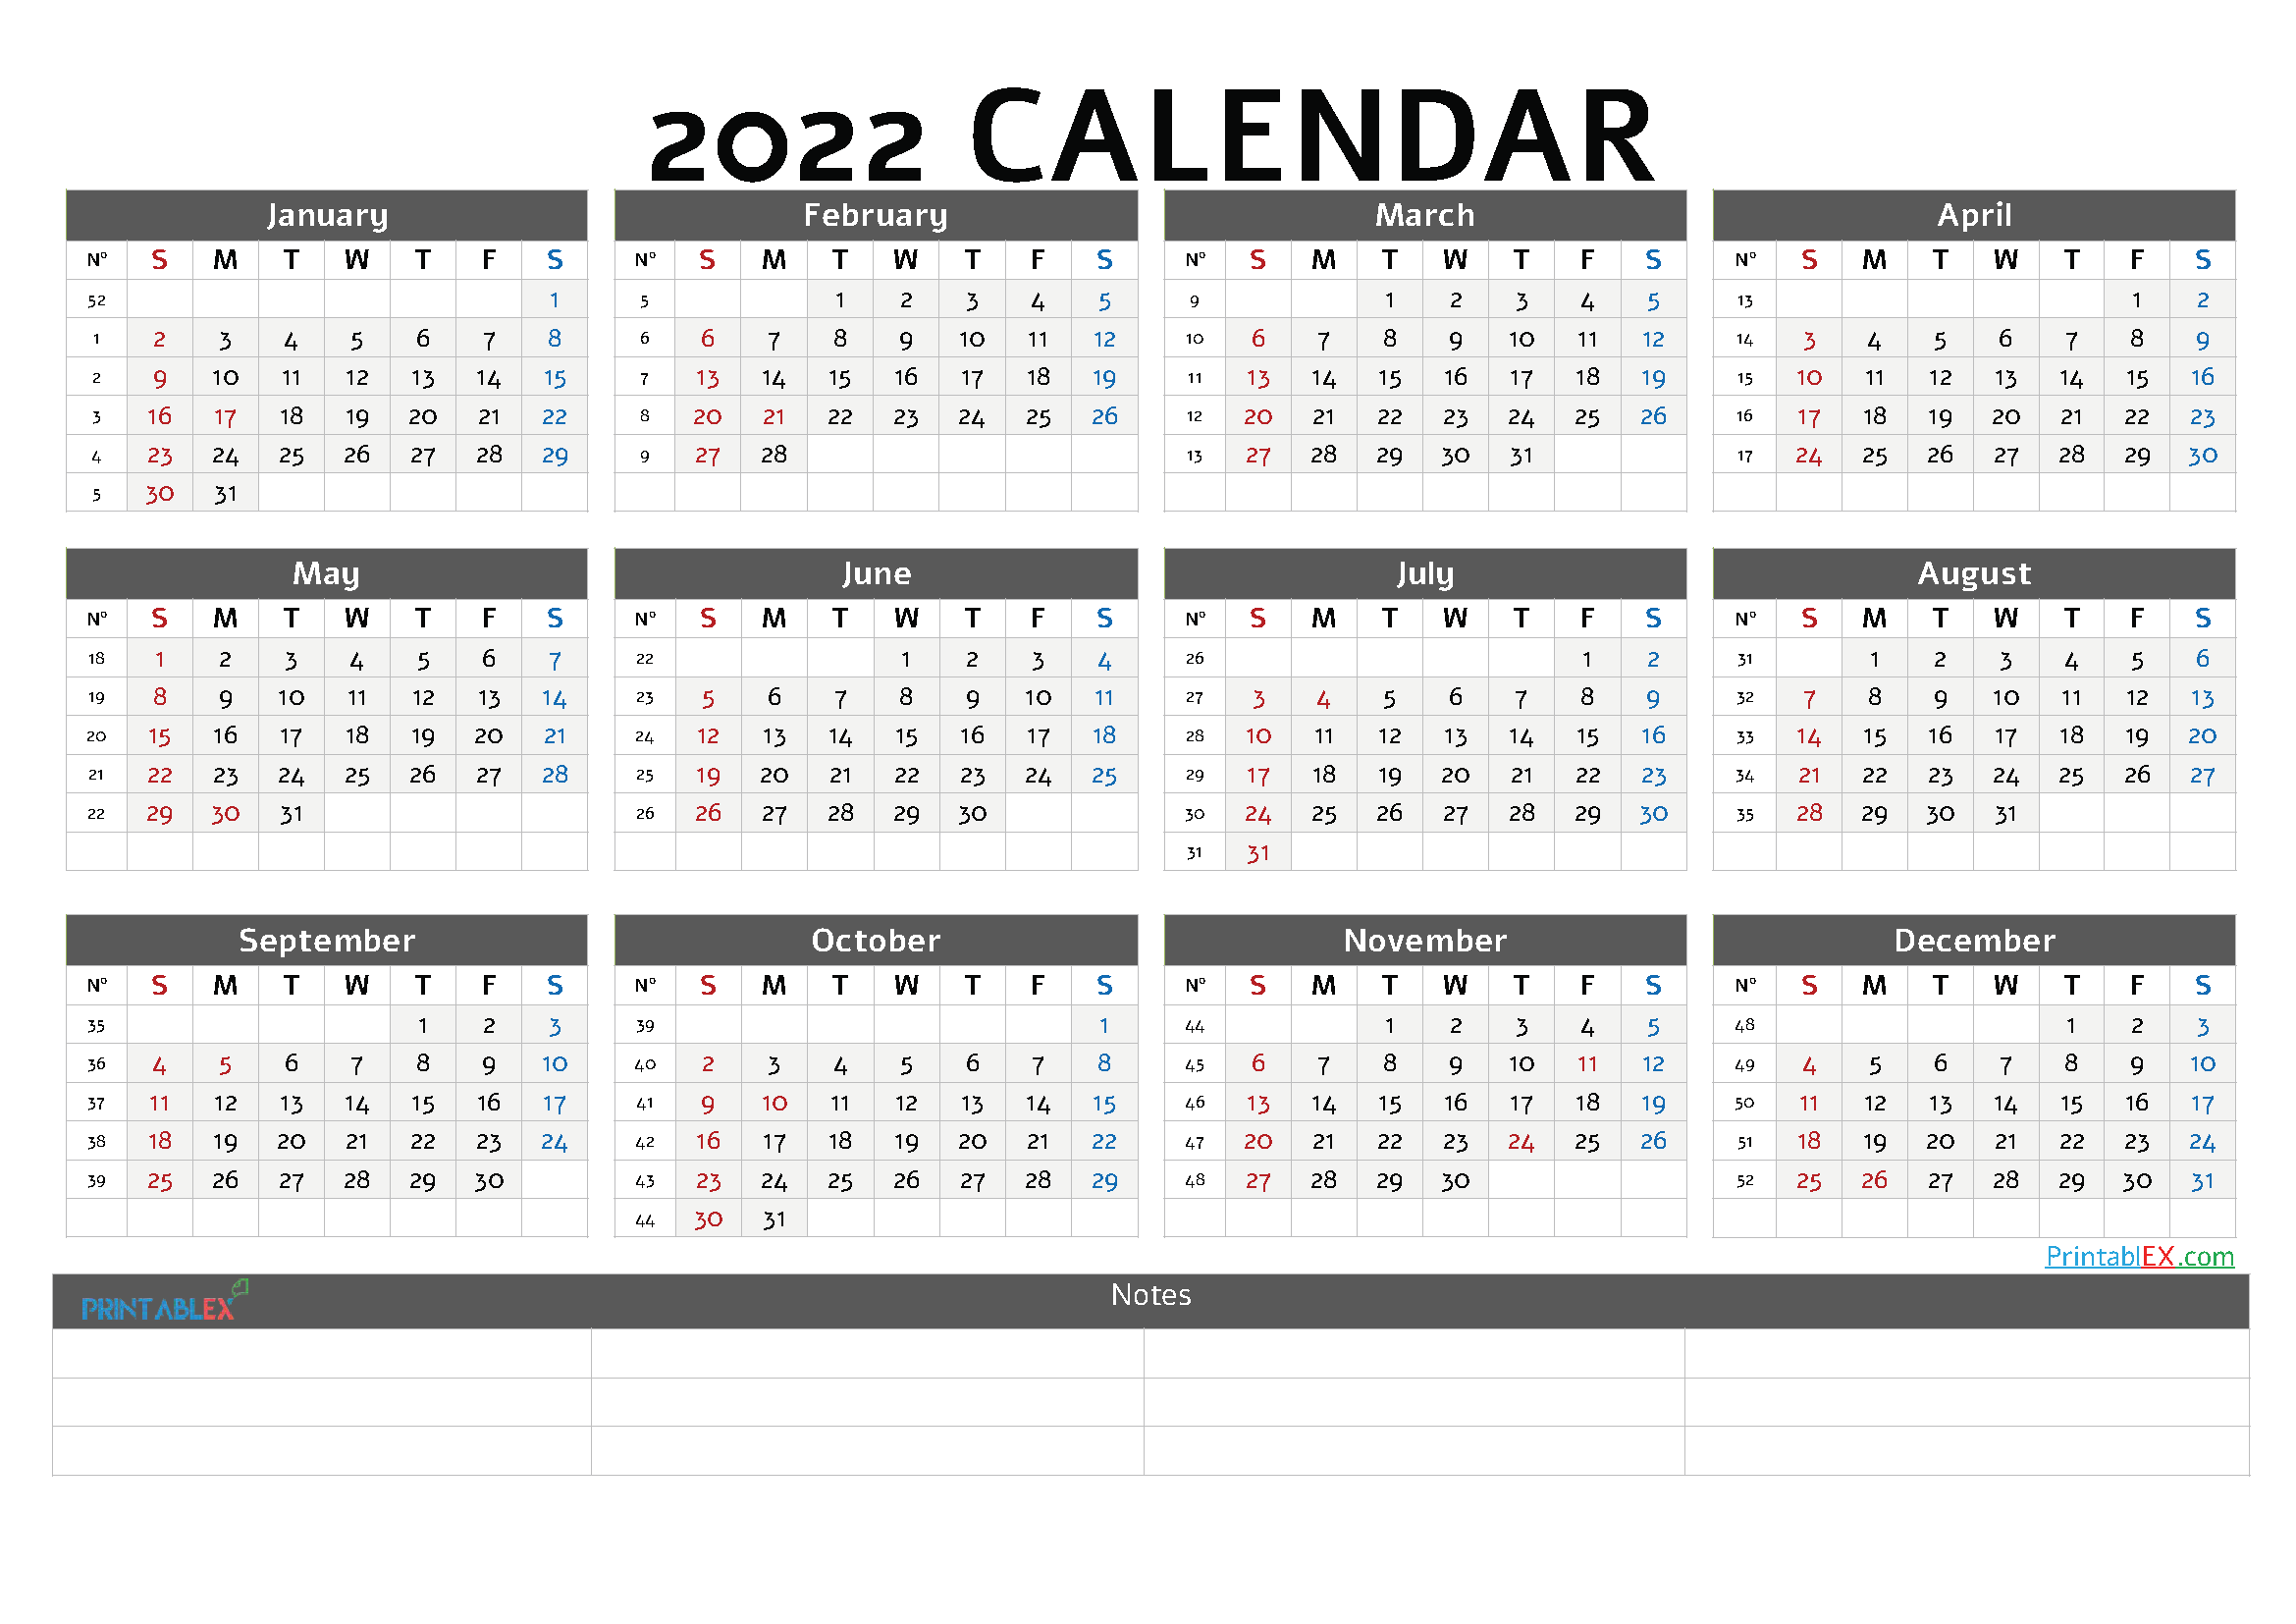 Free Printable 2022 Yearly Calendar with Week Numbers (Font: amble)